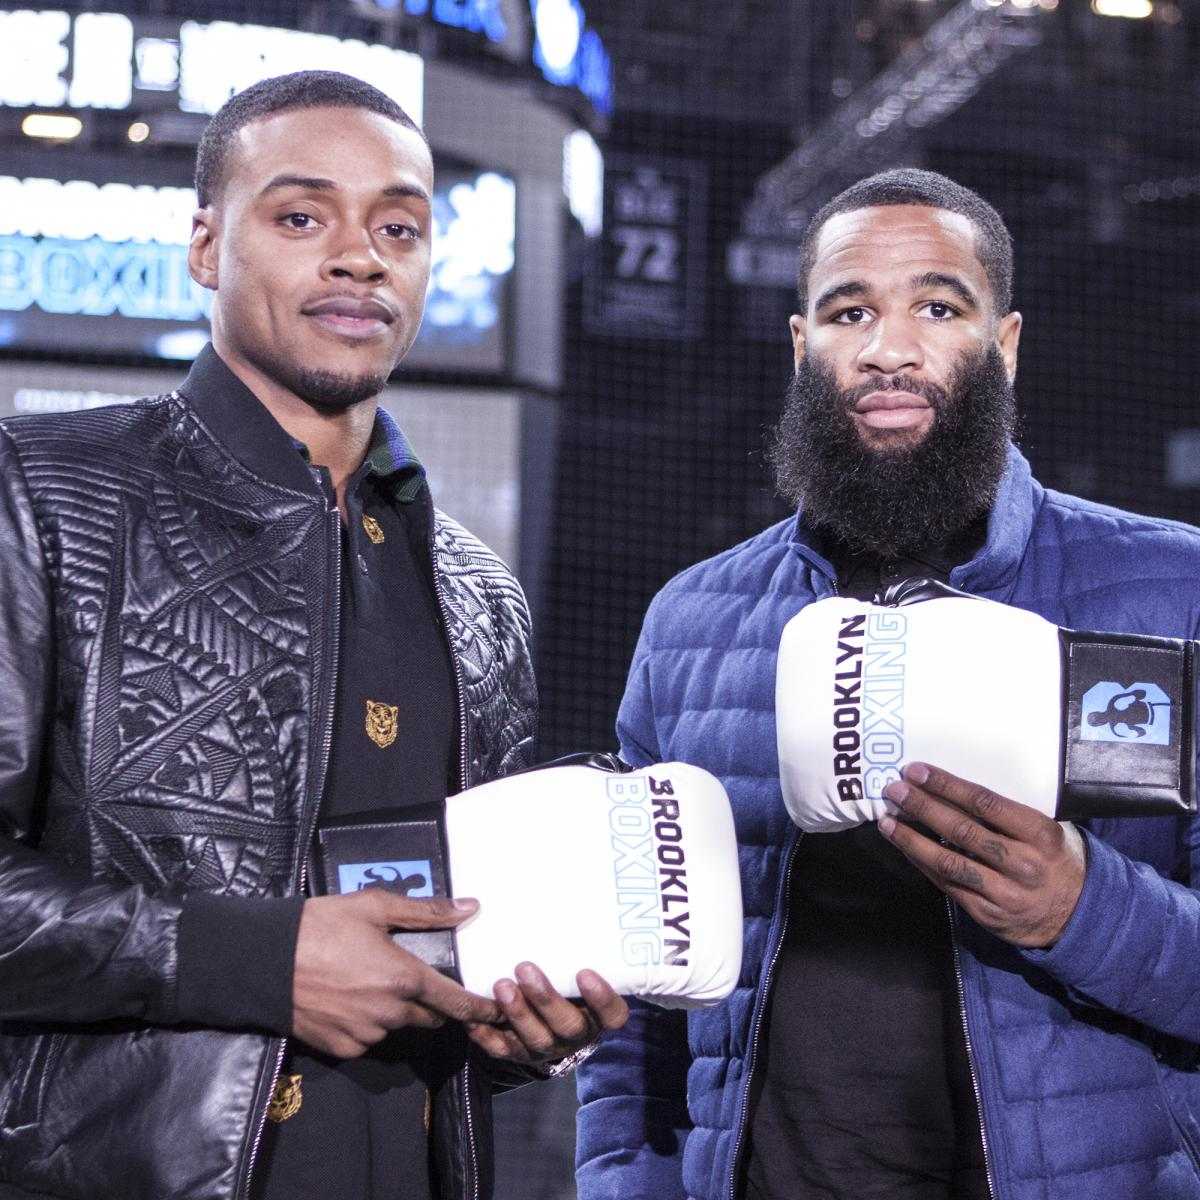 Errol Spence Jr vs. Lamont Peterson: Fight Time, Date, Live Stream and TV Info